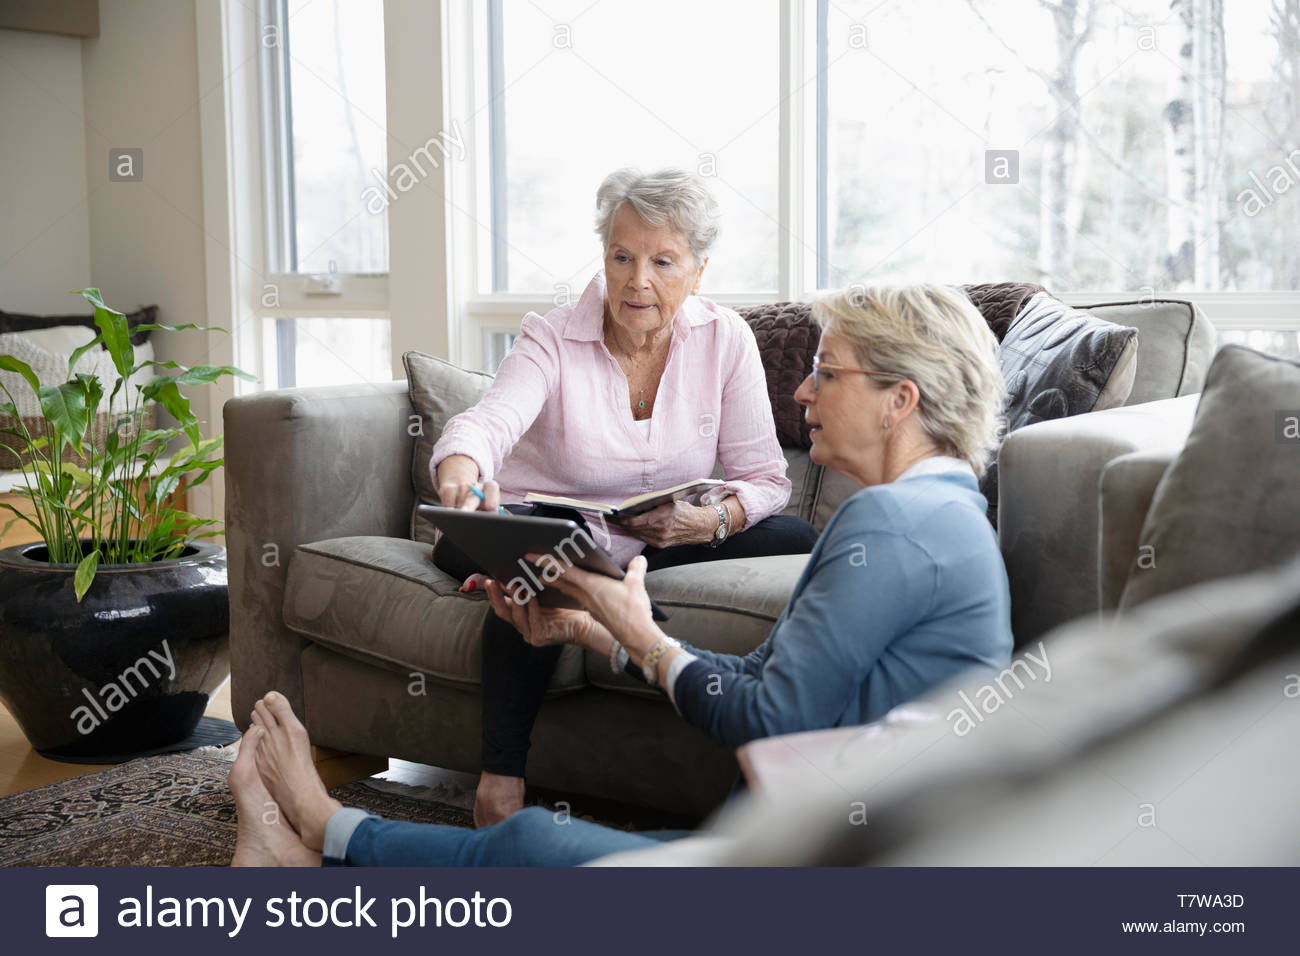 Daughter with digital tablet talking to senior mother in living room - Stock Image